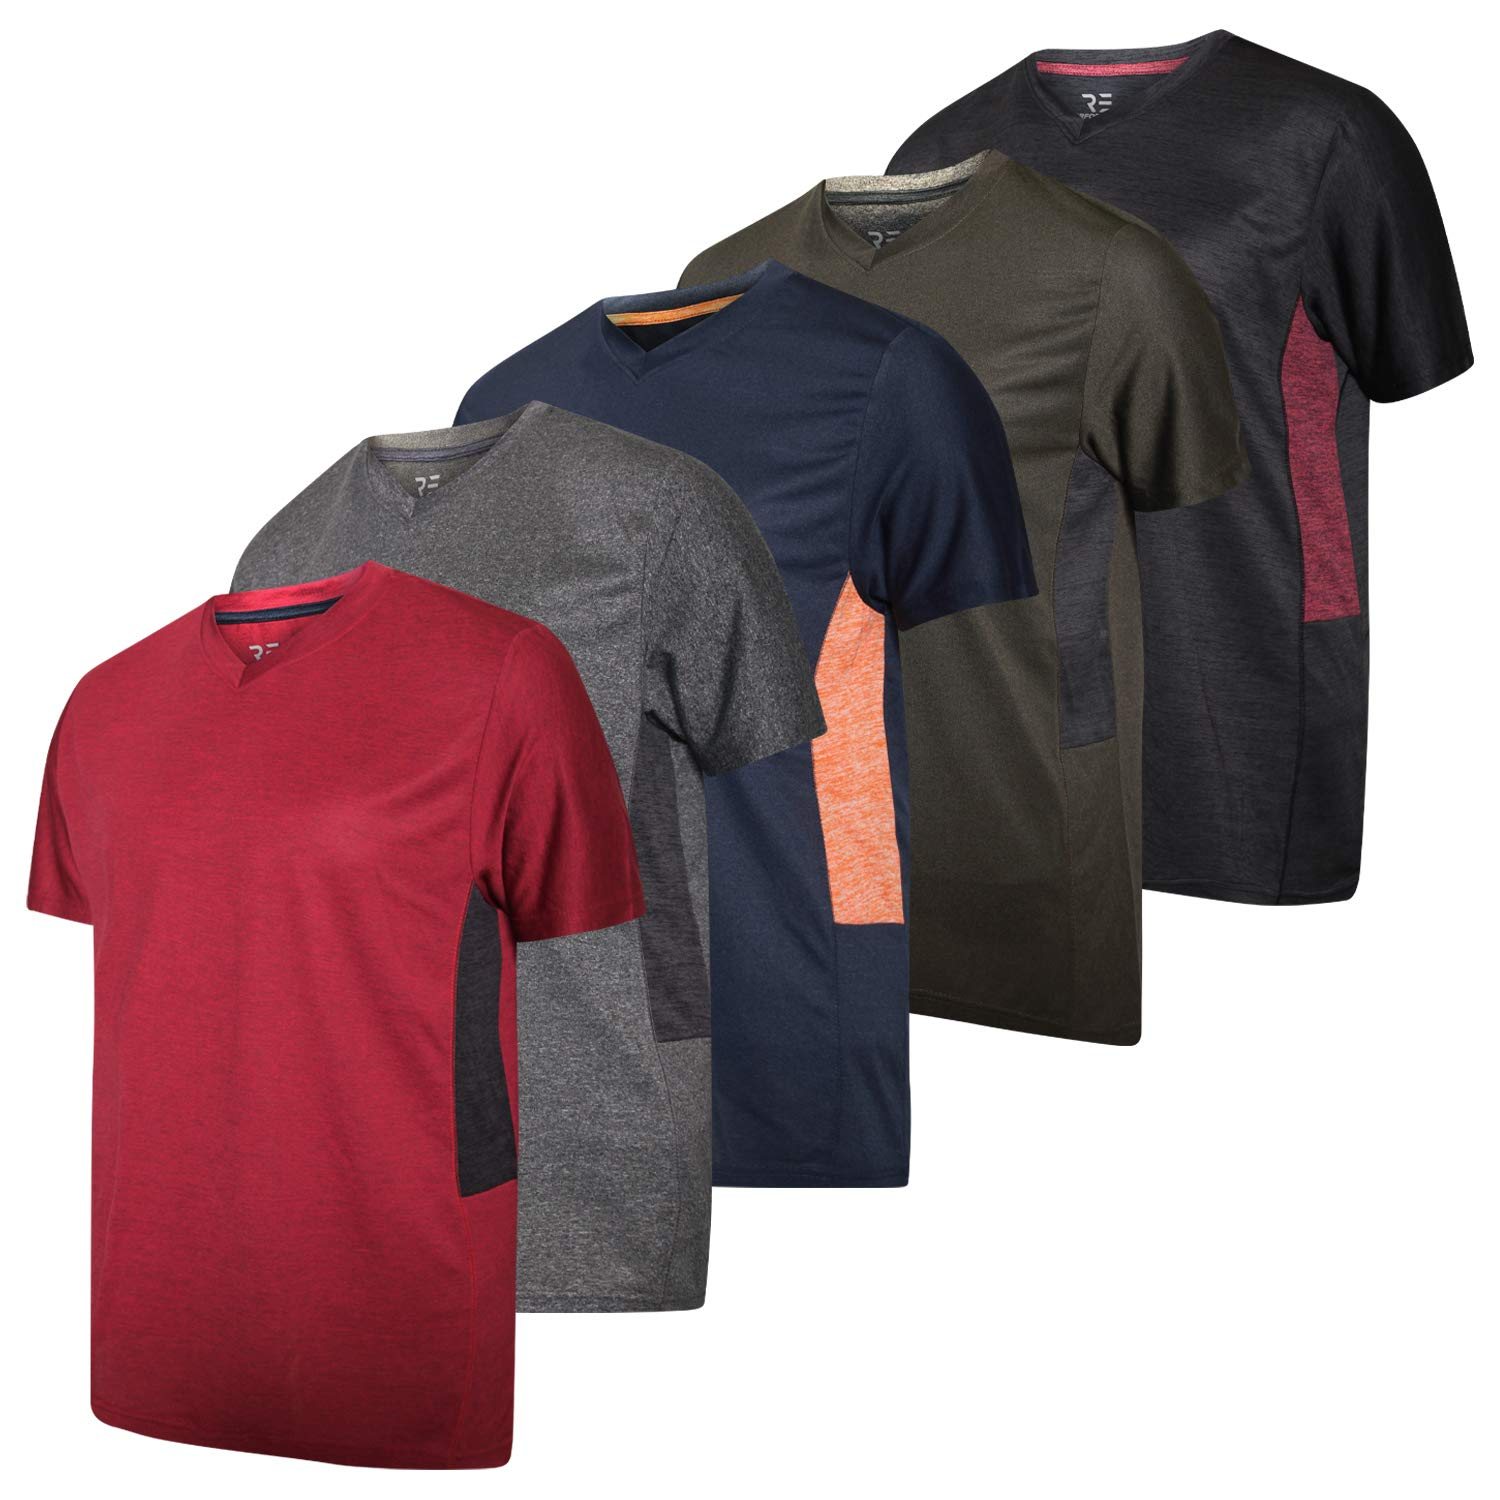 5 Pack:Men's V Neck Quick Dry Fit Dri-Fit Short Sleeve Active Wear Training Athletic Essentials T-Shirt Tee Fitness Gym Workout Undershirt Top-Set 4,XL by Real Essentials